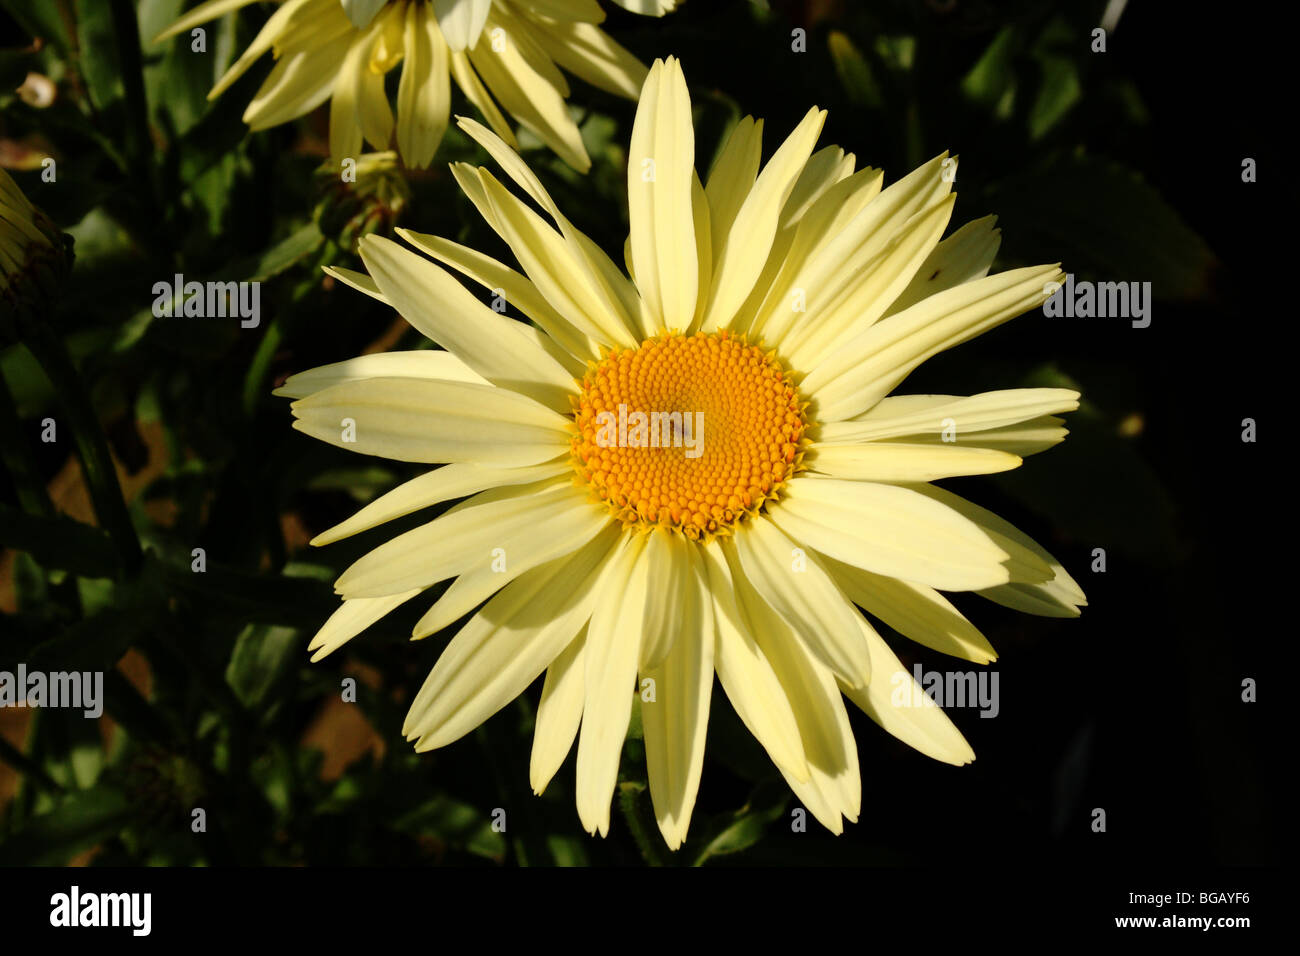 Leucanthemum Family Asteraceae Yellow Daisy Like Flower In Close Up